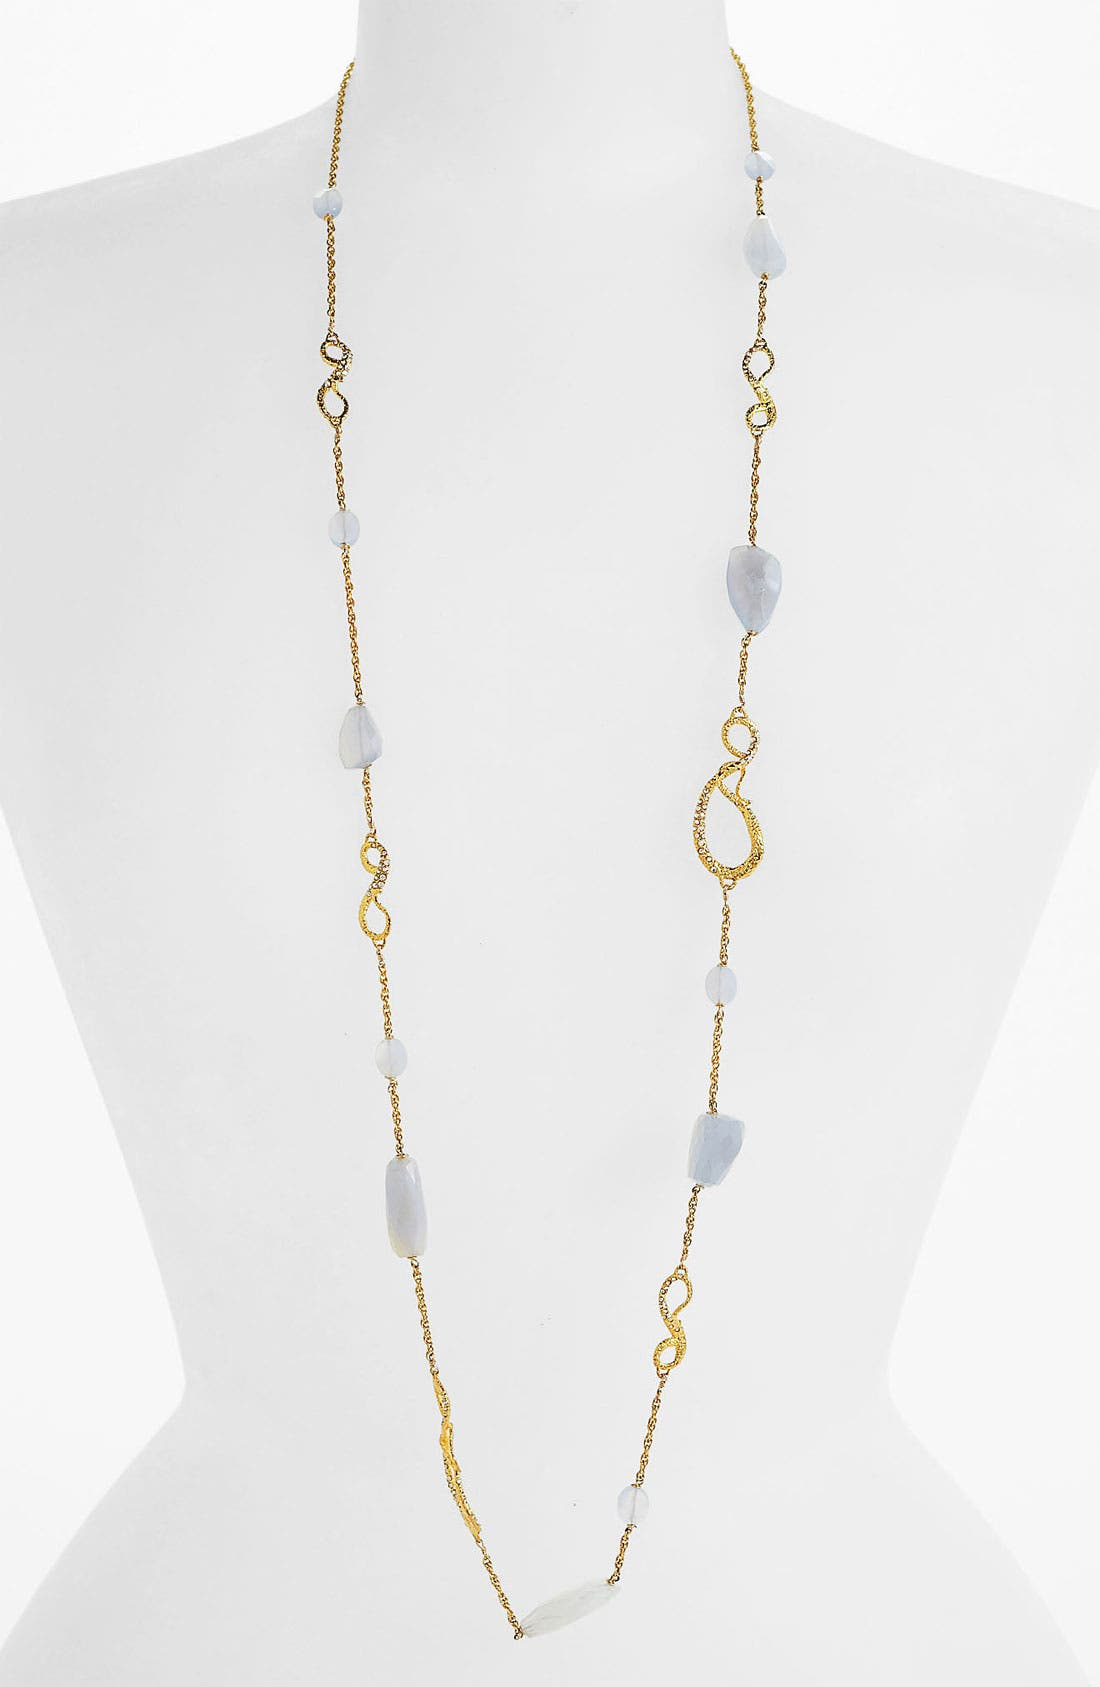 Alternate Image 1 Selected - Alexis Bittar 'Elements - Siyabona' Extra Long Station Necklace